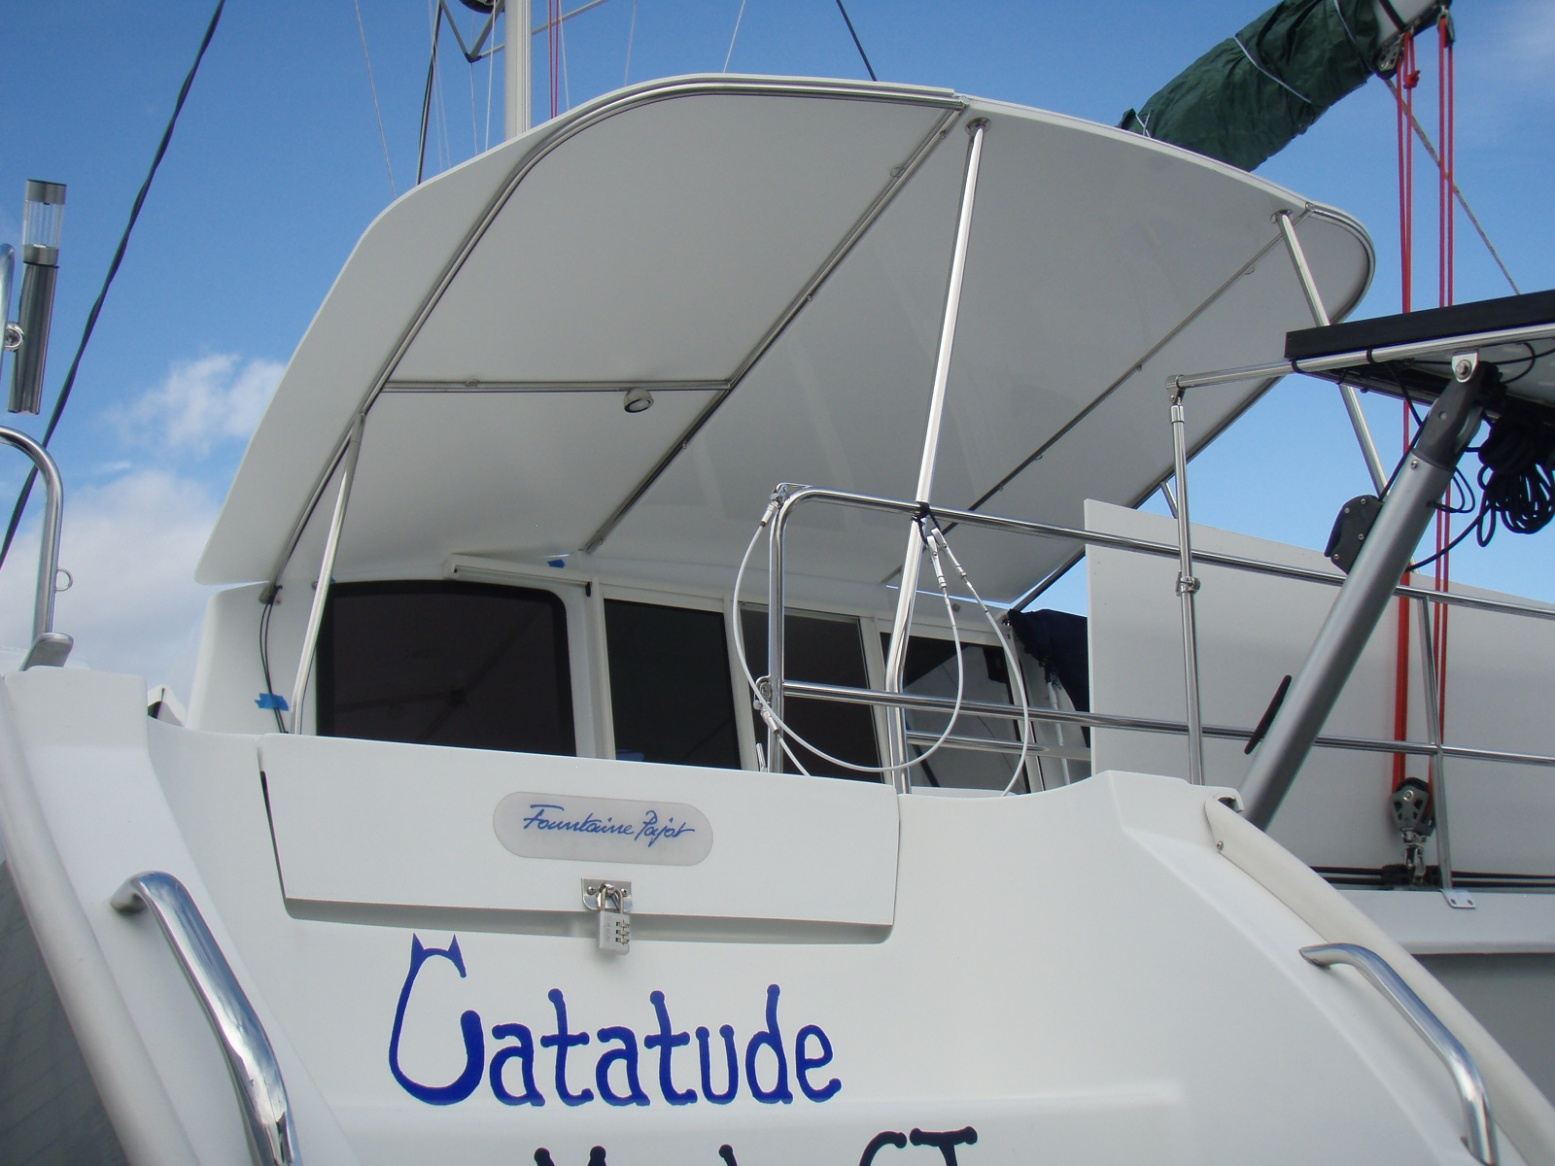 Click image for larger version  Name:Catatude hardtop.jpg Views:103 Size:393.9 KB ID:86157